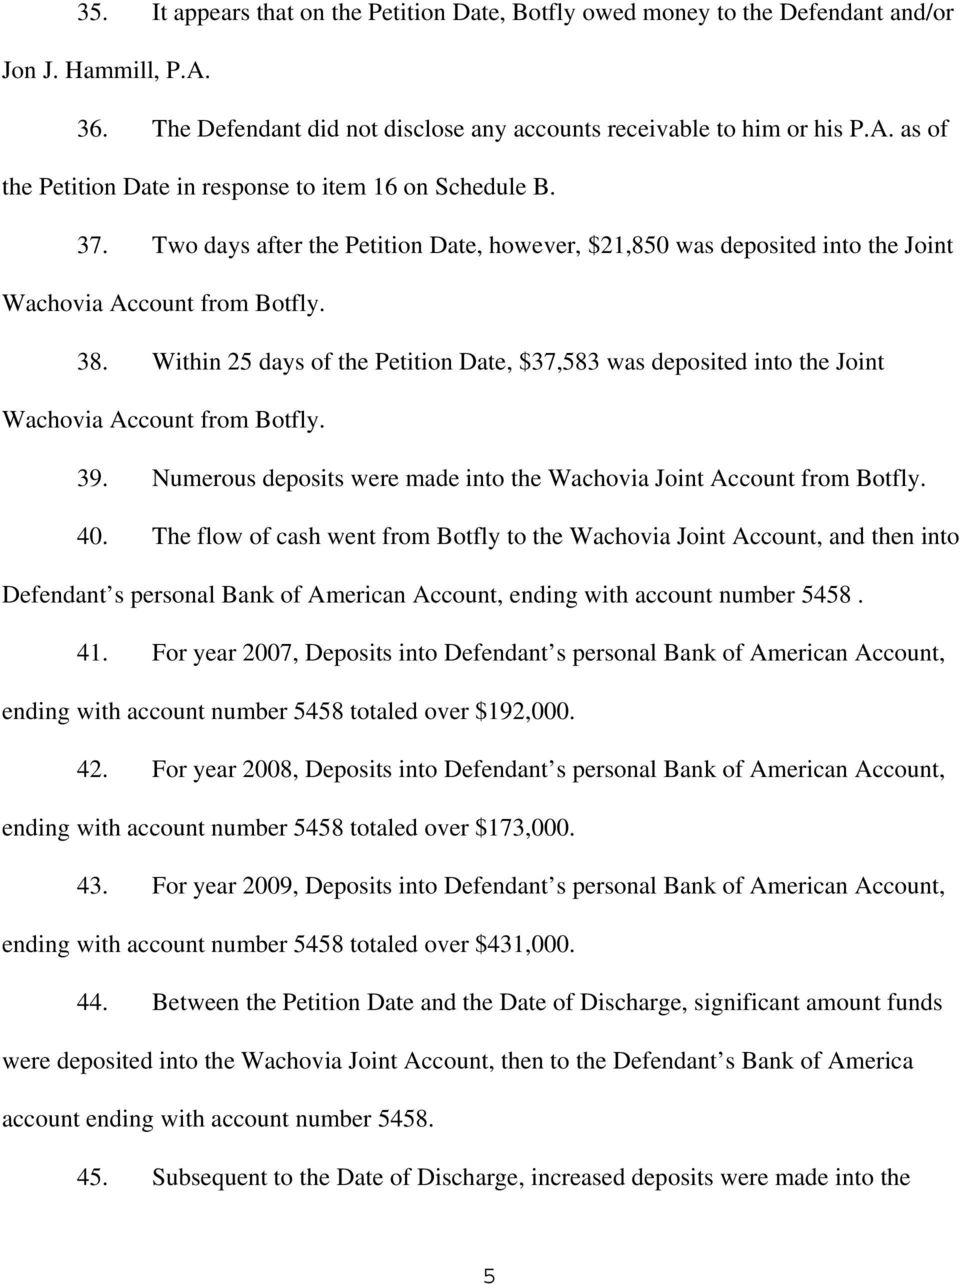 Within 25 days of the Petition Date, $37,583 was deposited into the Joint Wachovia Account from Botfly. 39. Numerous deposits were made into the Wachovia Joint Account from Botfly. 40.